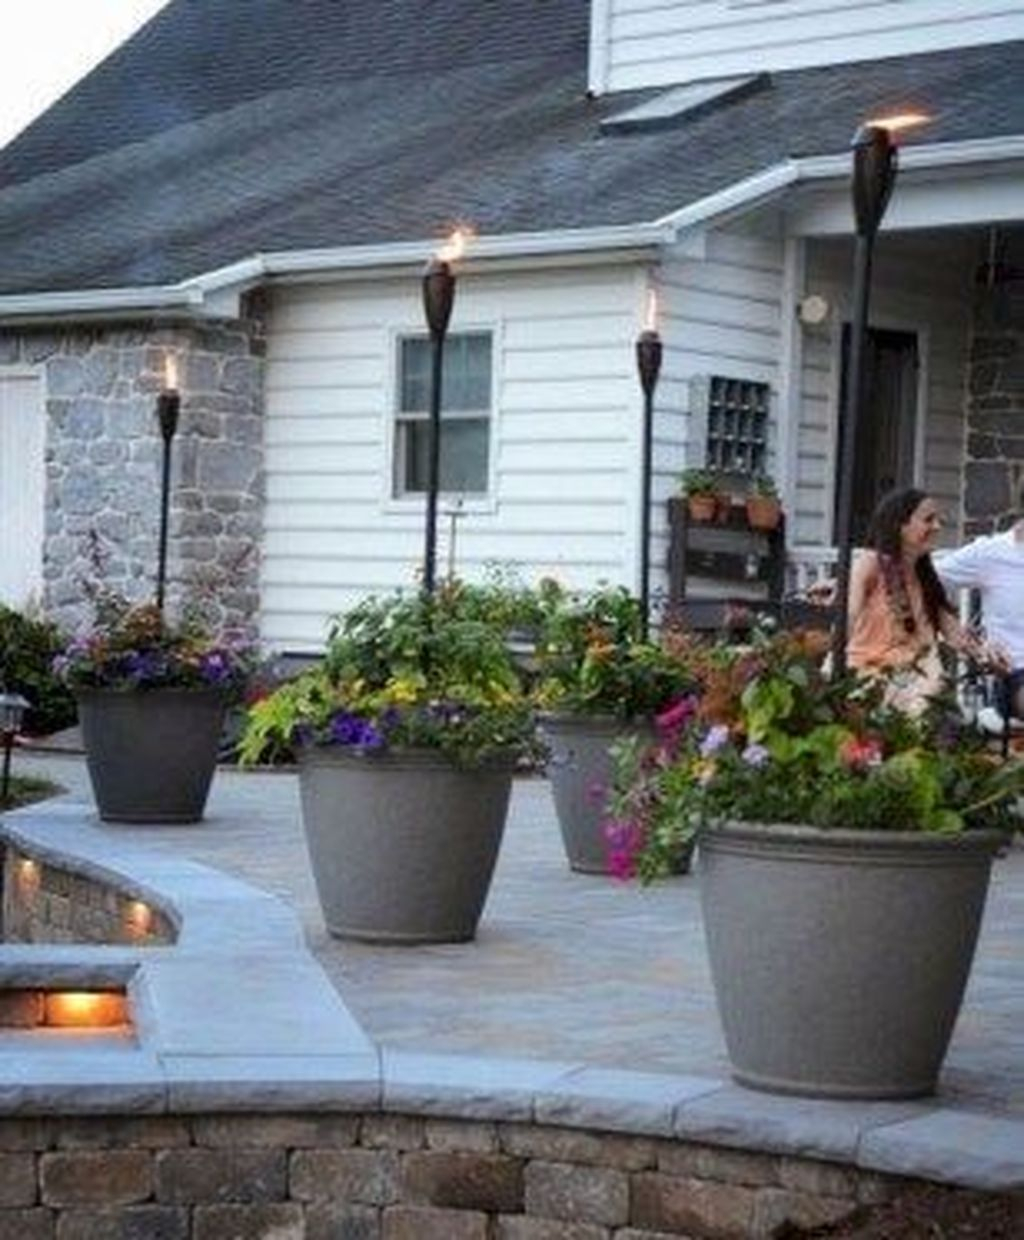 Captivating Diy Patio Gardens Ideas On A Budget To Try 30